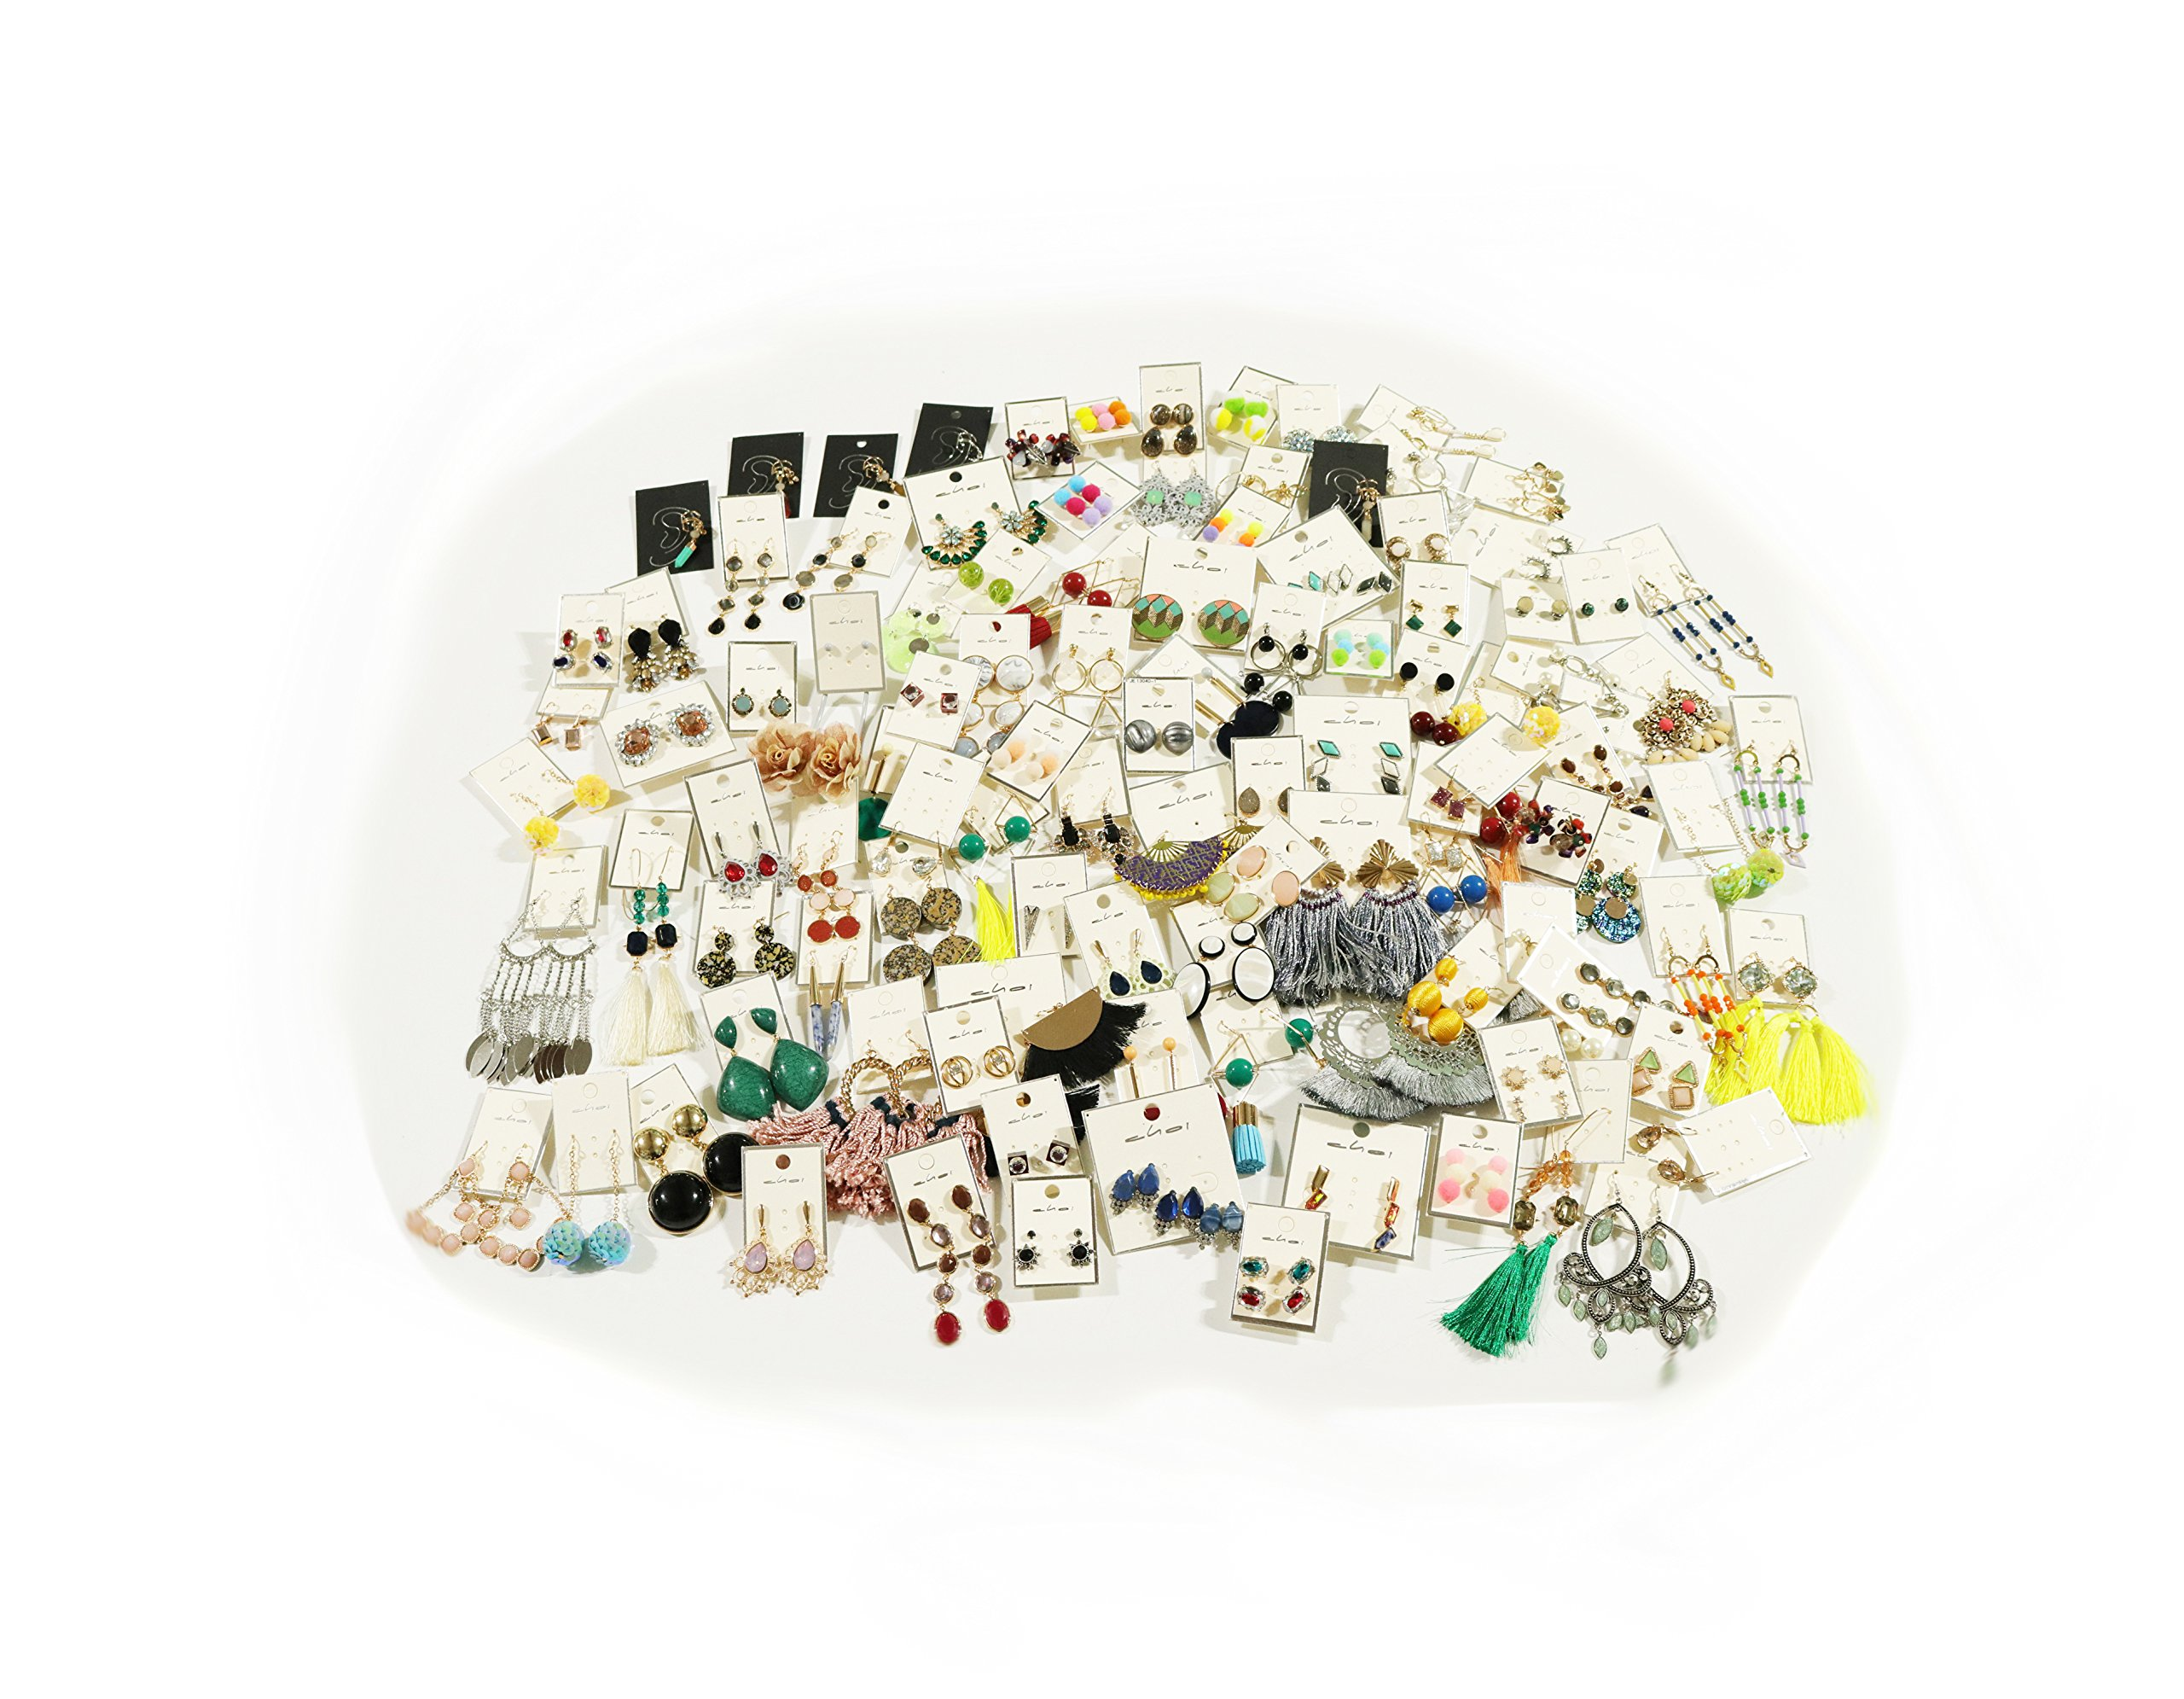 Fashion Jewelry Earrings, 100 Pieces in Bulk for Wholesale, Assorted earrings made of Zinc, Steel, & Brass by Choice by Choi